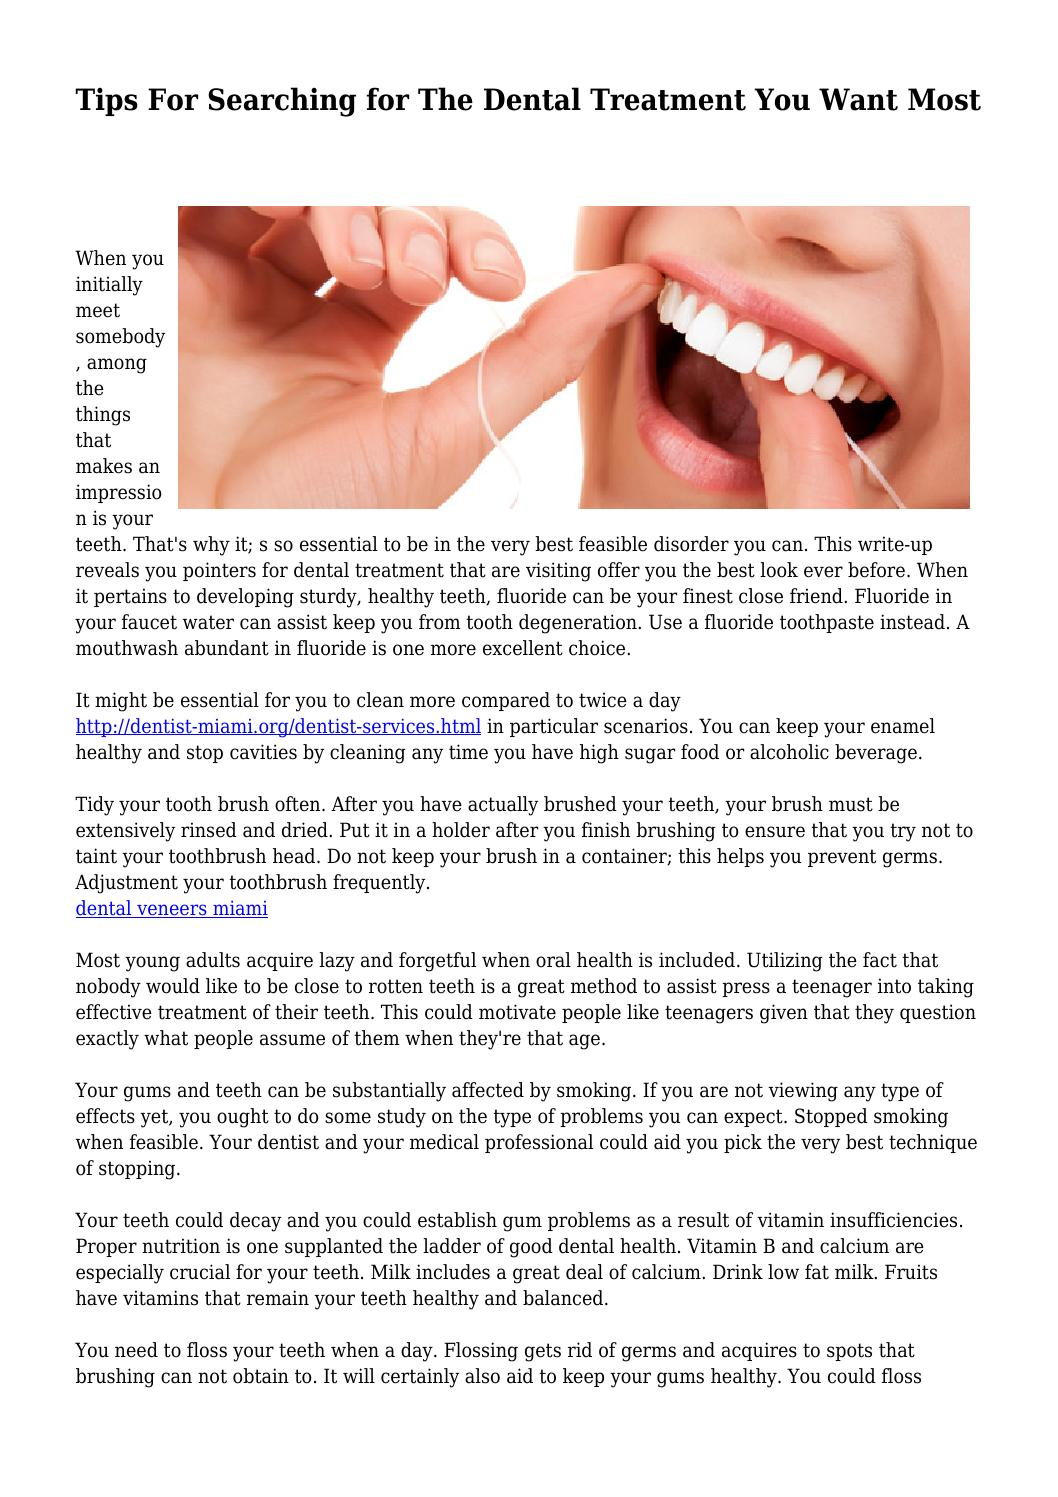 Tips For Searching for The Dental Treatment You Want Most by